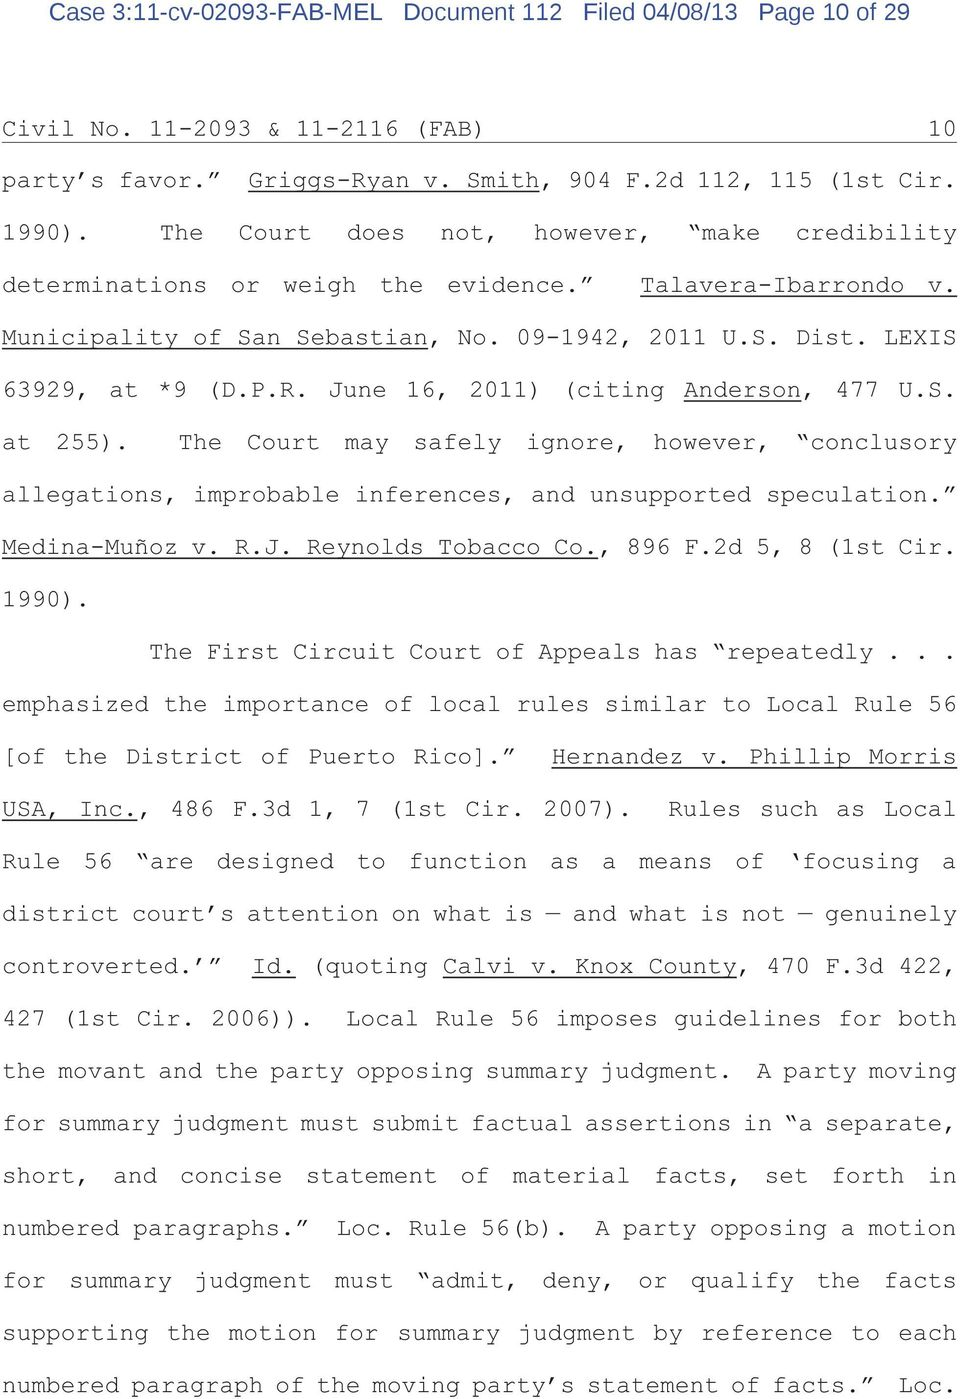 June 16, 2011) (citing Anderson, 477 U.S. at 255). The Court may safely ignore, however, conclusory allegations, improbable inferences, and unsupported speculation. Medina-Muñoz v. R.J. Reynolds Tobacco Co.